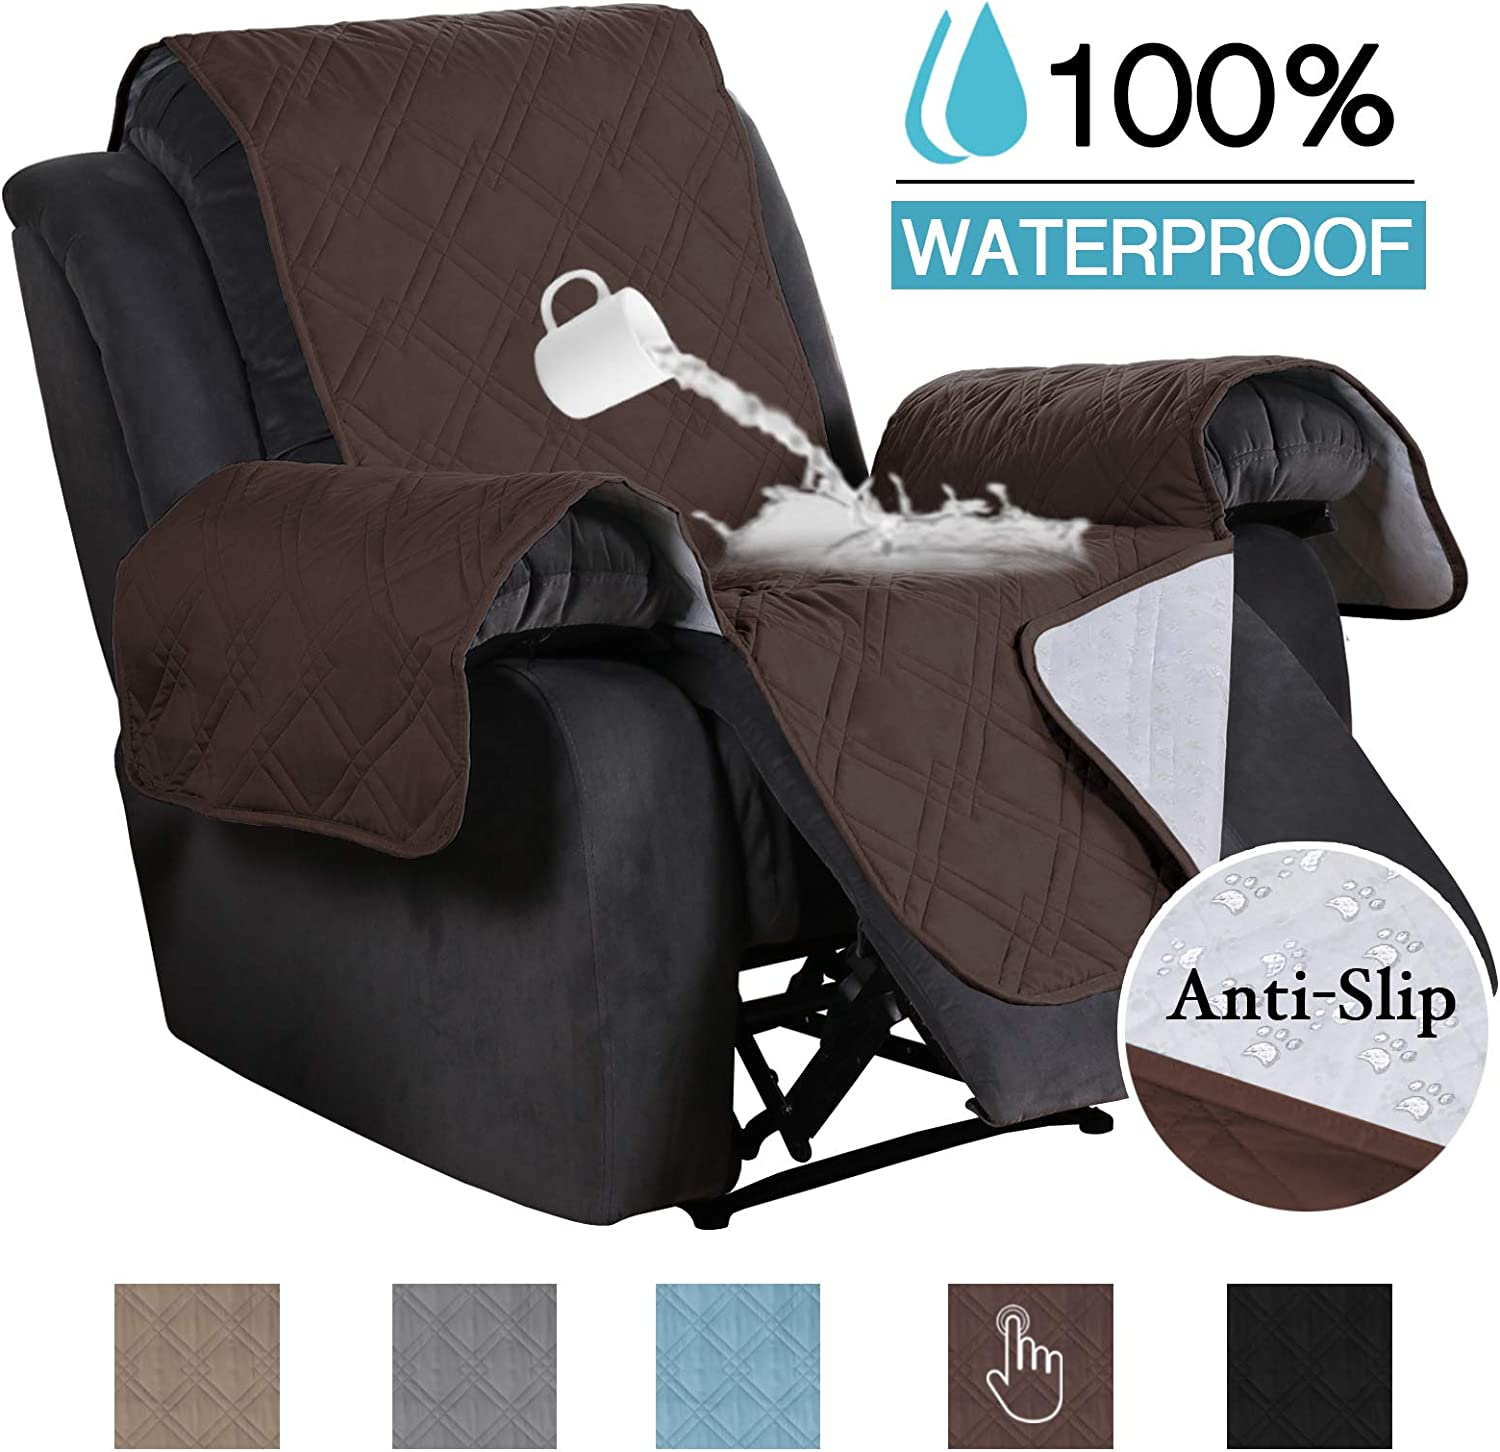 100% Waterproof Non Slip Furniture Covers for Leather Recliner Covers for Large Recliner Seat Width Up to 30 Inch Couch Covers with Non Slip Backing